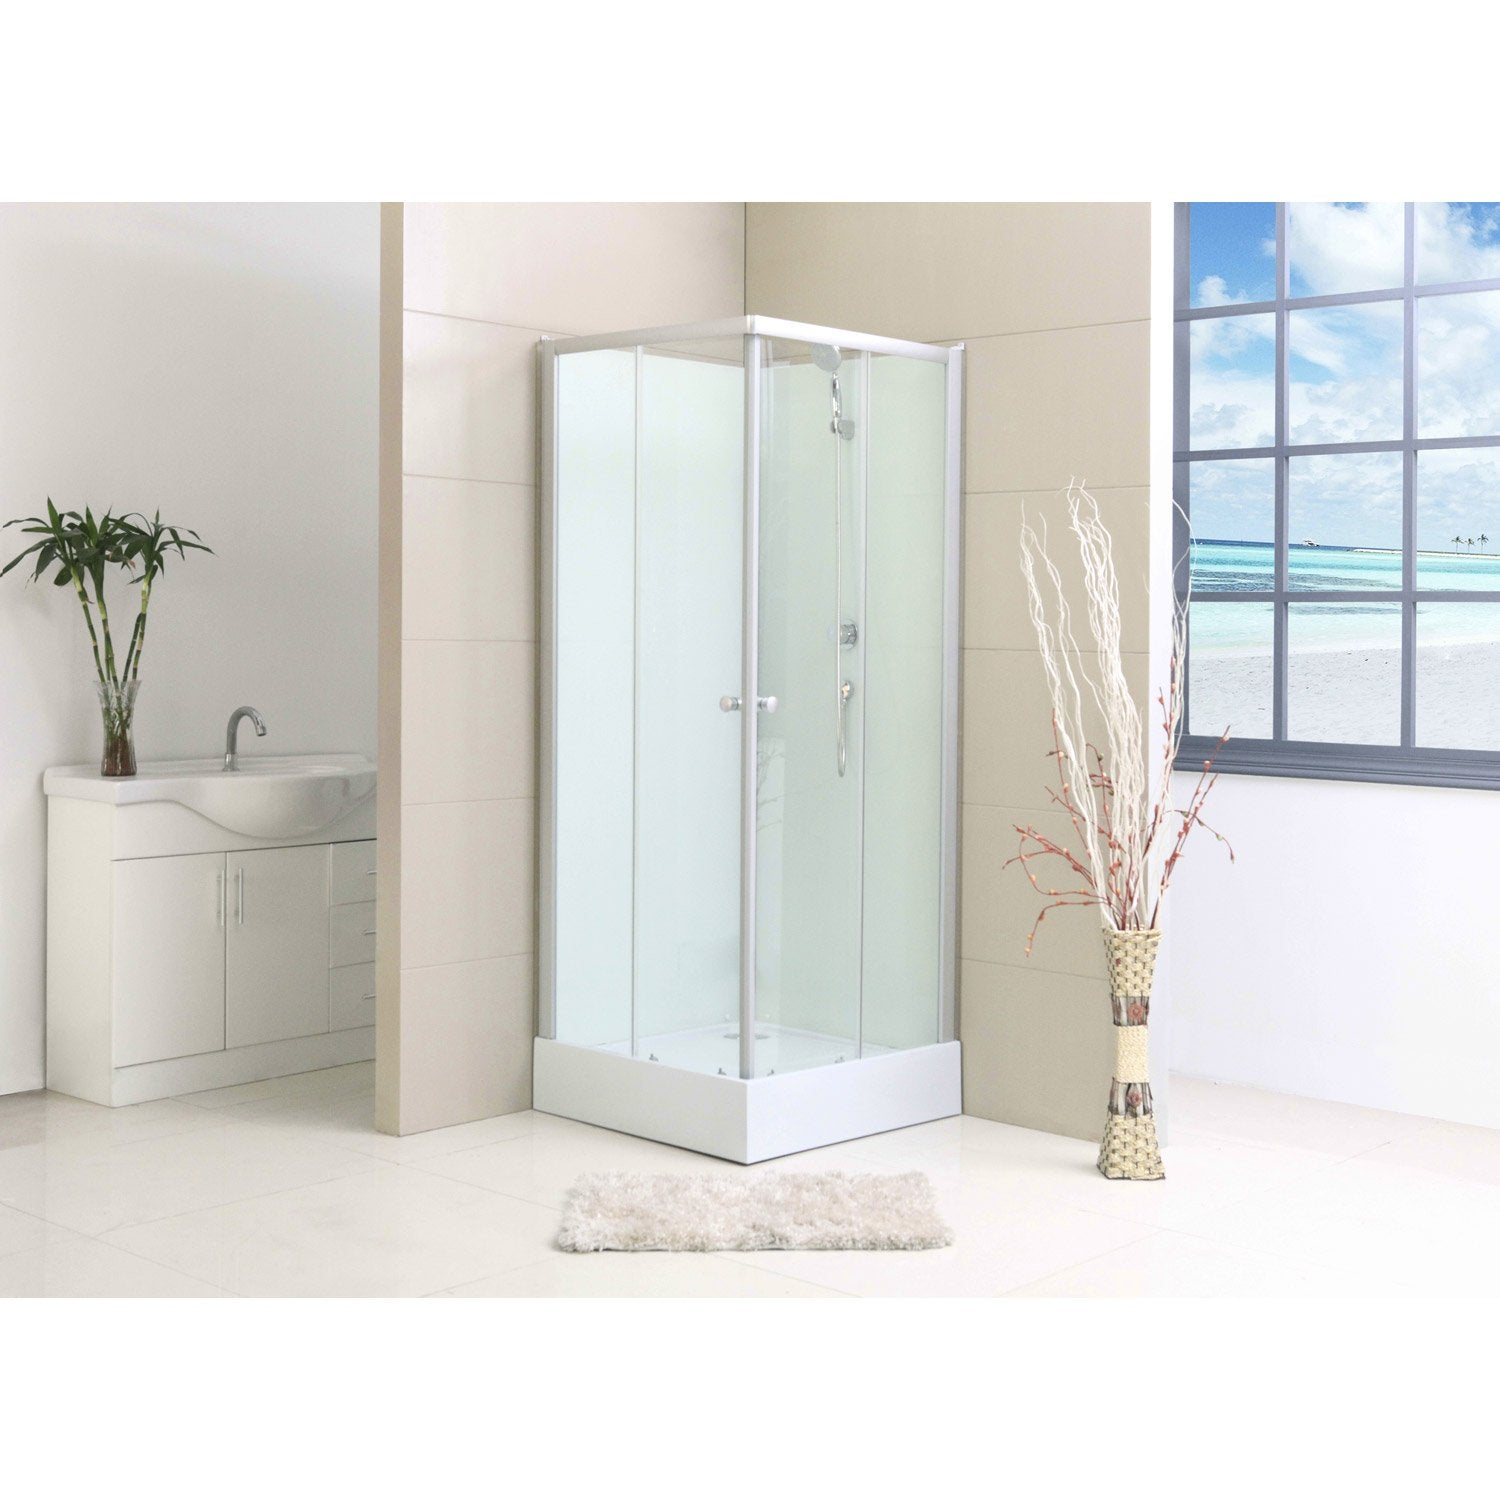 Cabine de douche nerea2 simple mitigeur carr 80x80 cm leroy merlin - Cabine de douche simple ...